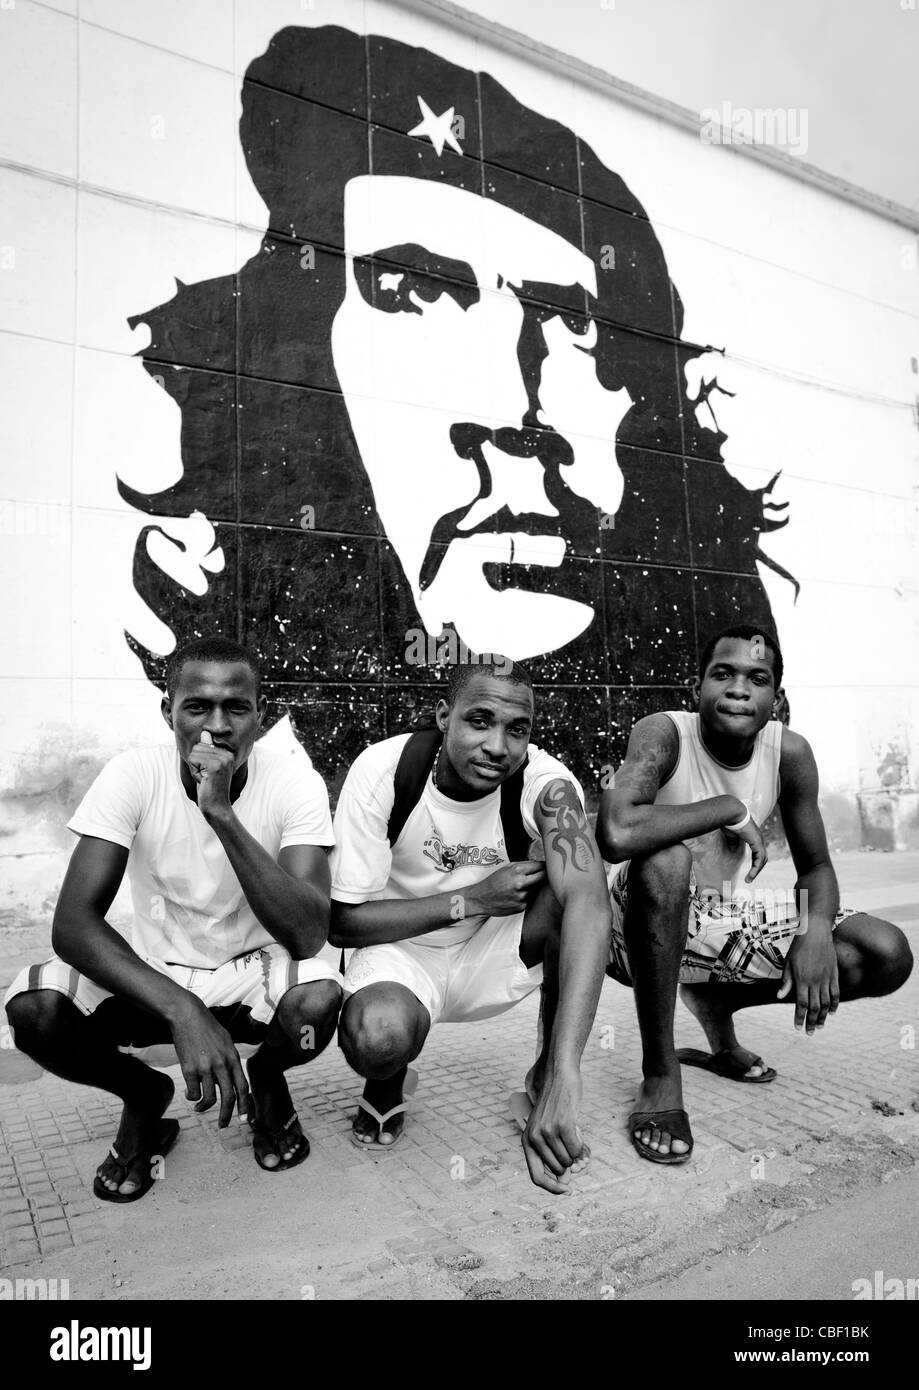 Men Crouched In Front Of A Che Guevara Wall Painting, Sumbe, Angola - Stock Image